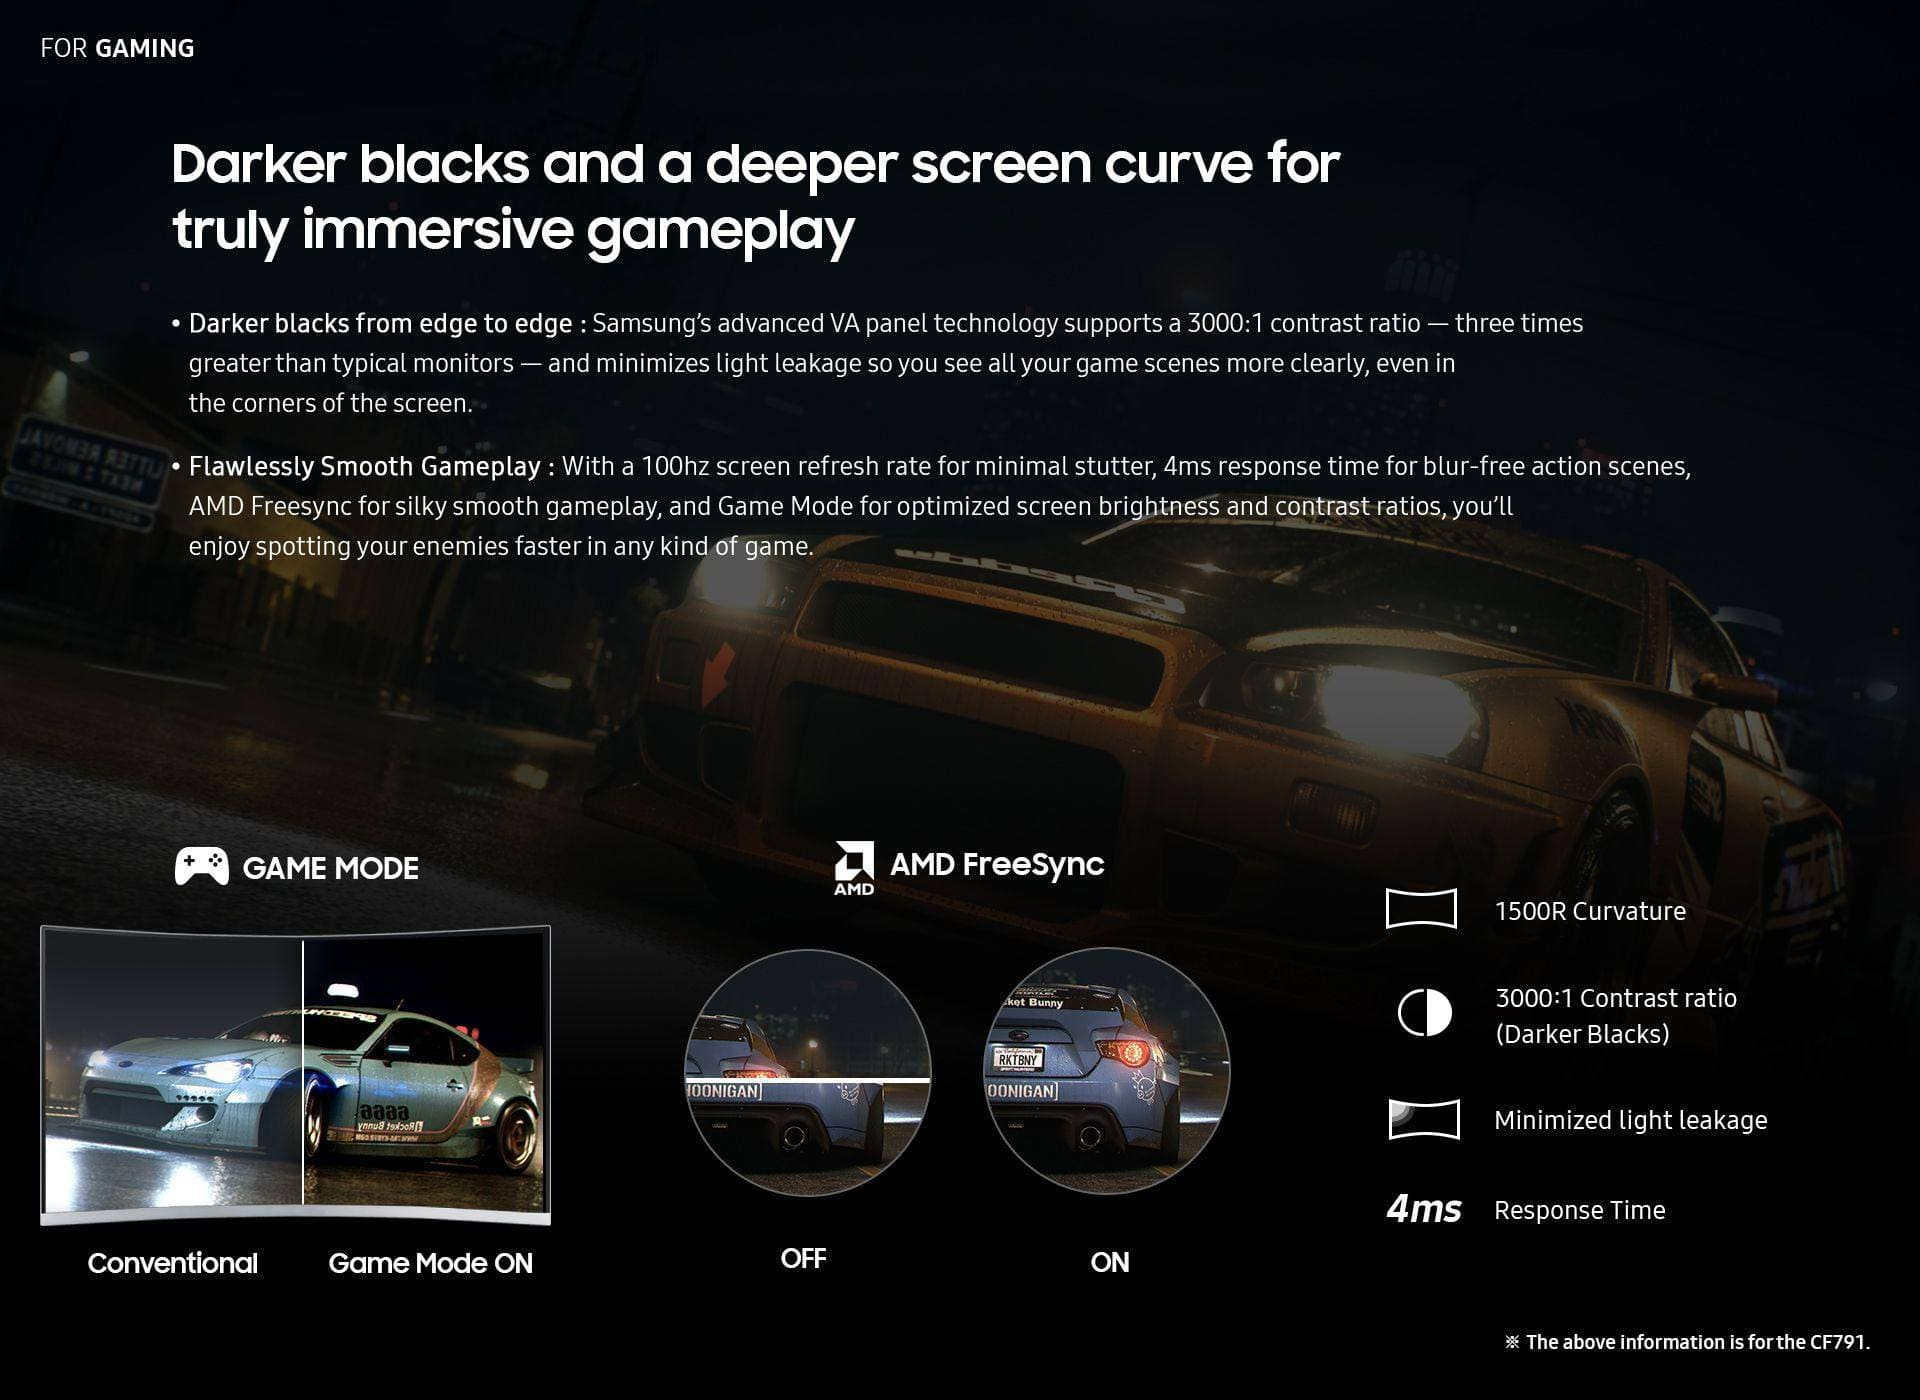 Real Curve. Real Immersion.-Darker blacks and a deeper screen curve for truly immersive gameplay